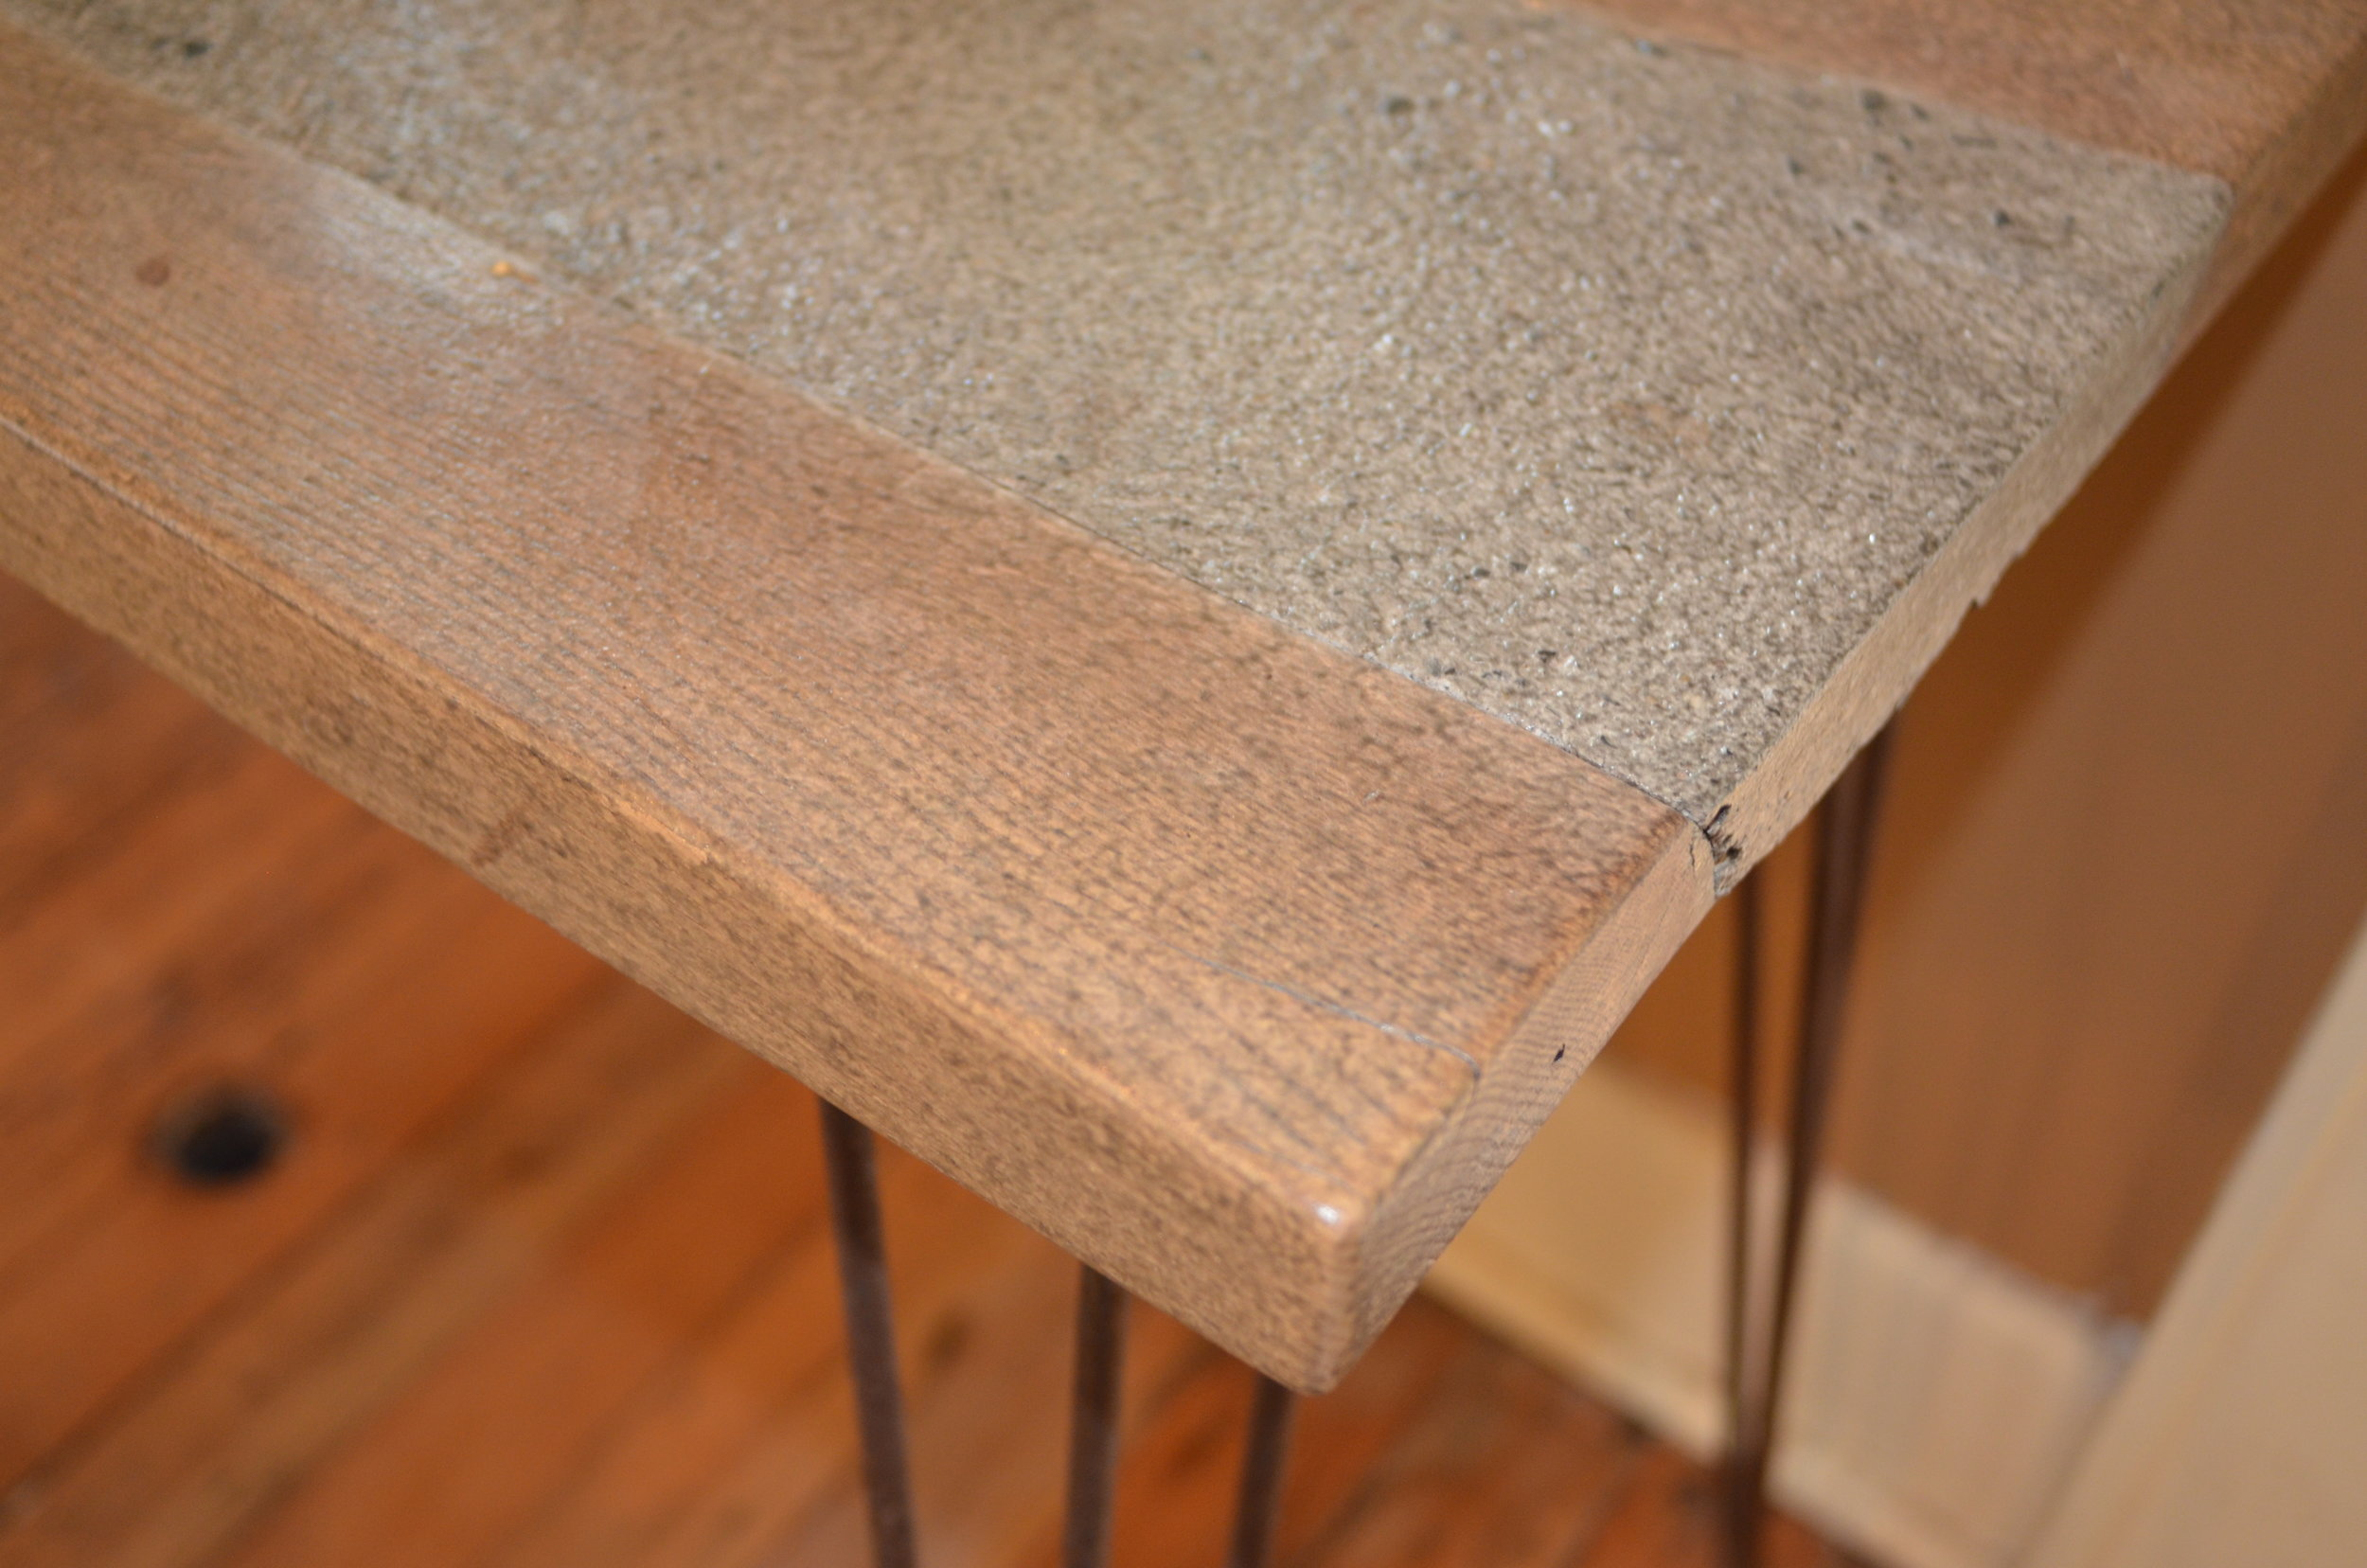 DETAIL OF CONCRETE AND RECLAIMED WOOD HAND-MADE SIDE TABLE